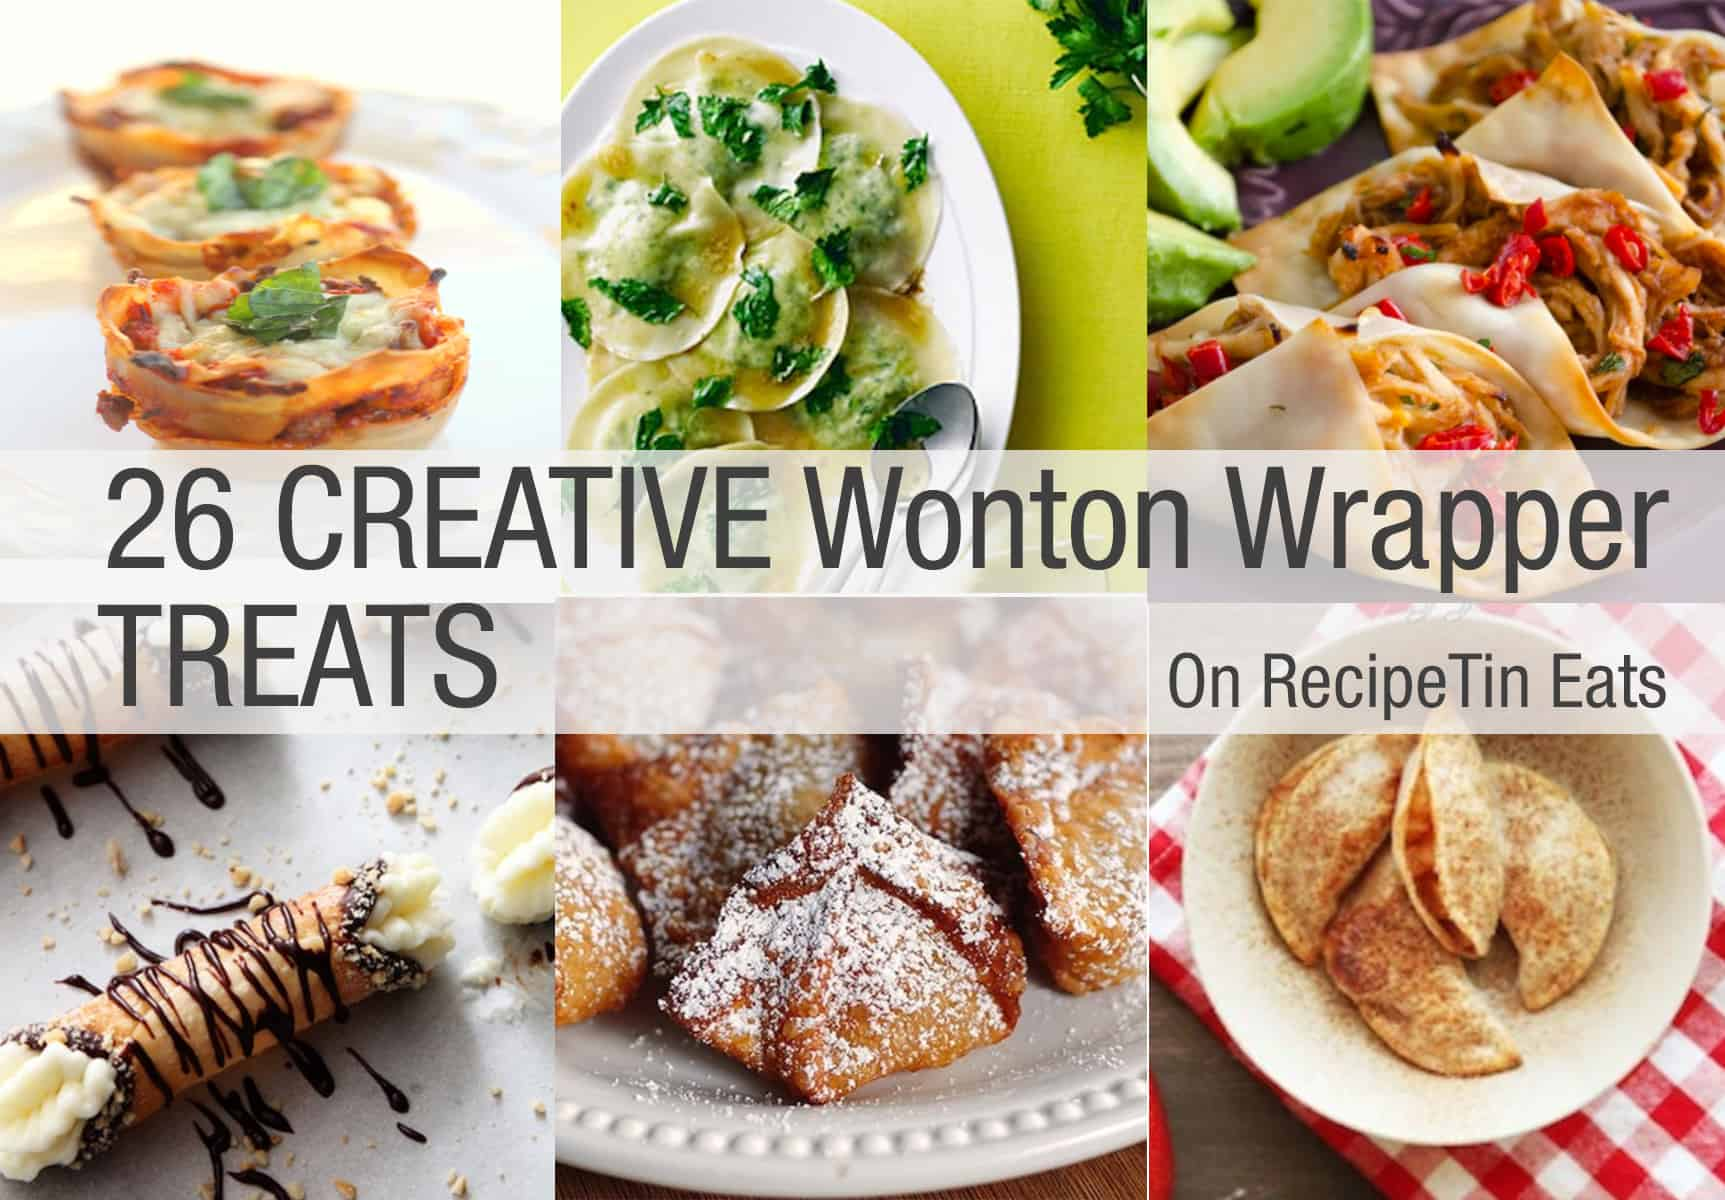 26 creative bites made with wonton wrappers recipetin eats recipetin eats 26 wonton wrapper treats roundup solutioingenieria Images